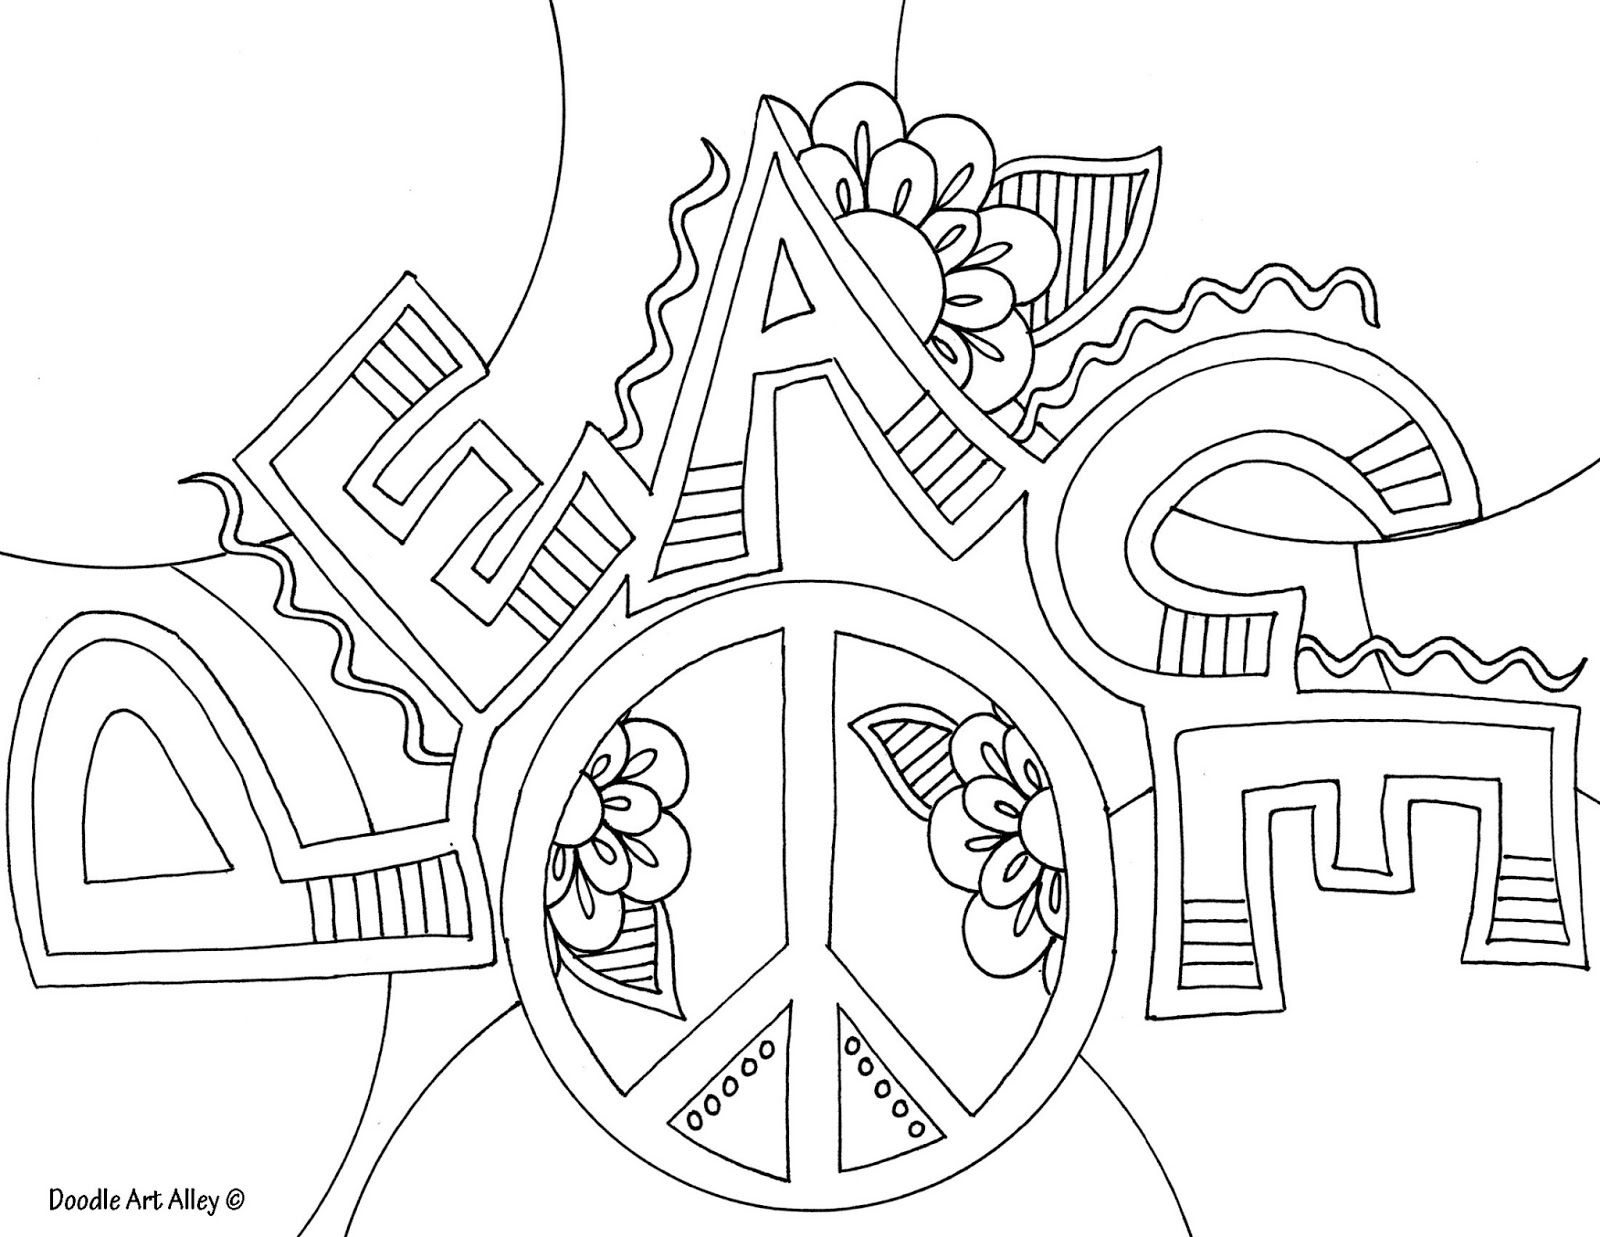 Awesome Peace Coloring Pages for Adults | Coloring pages for Adults ...